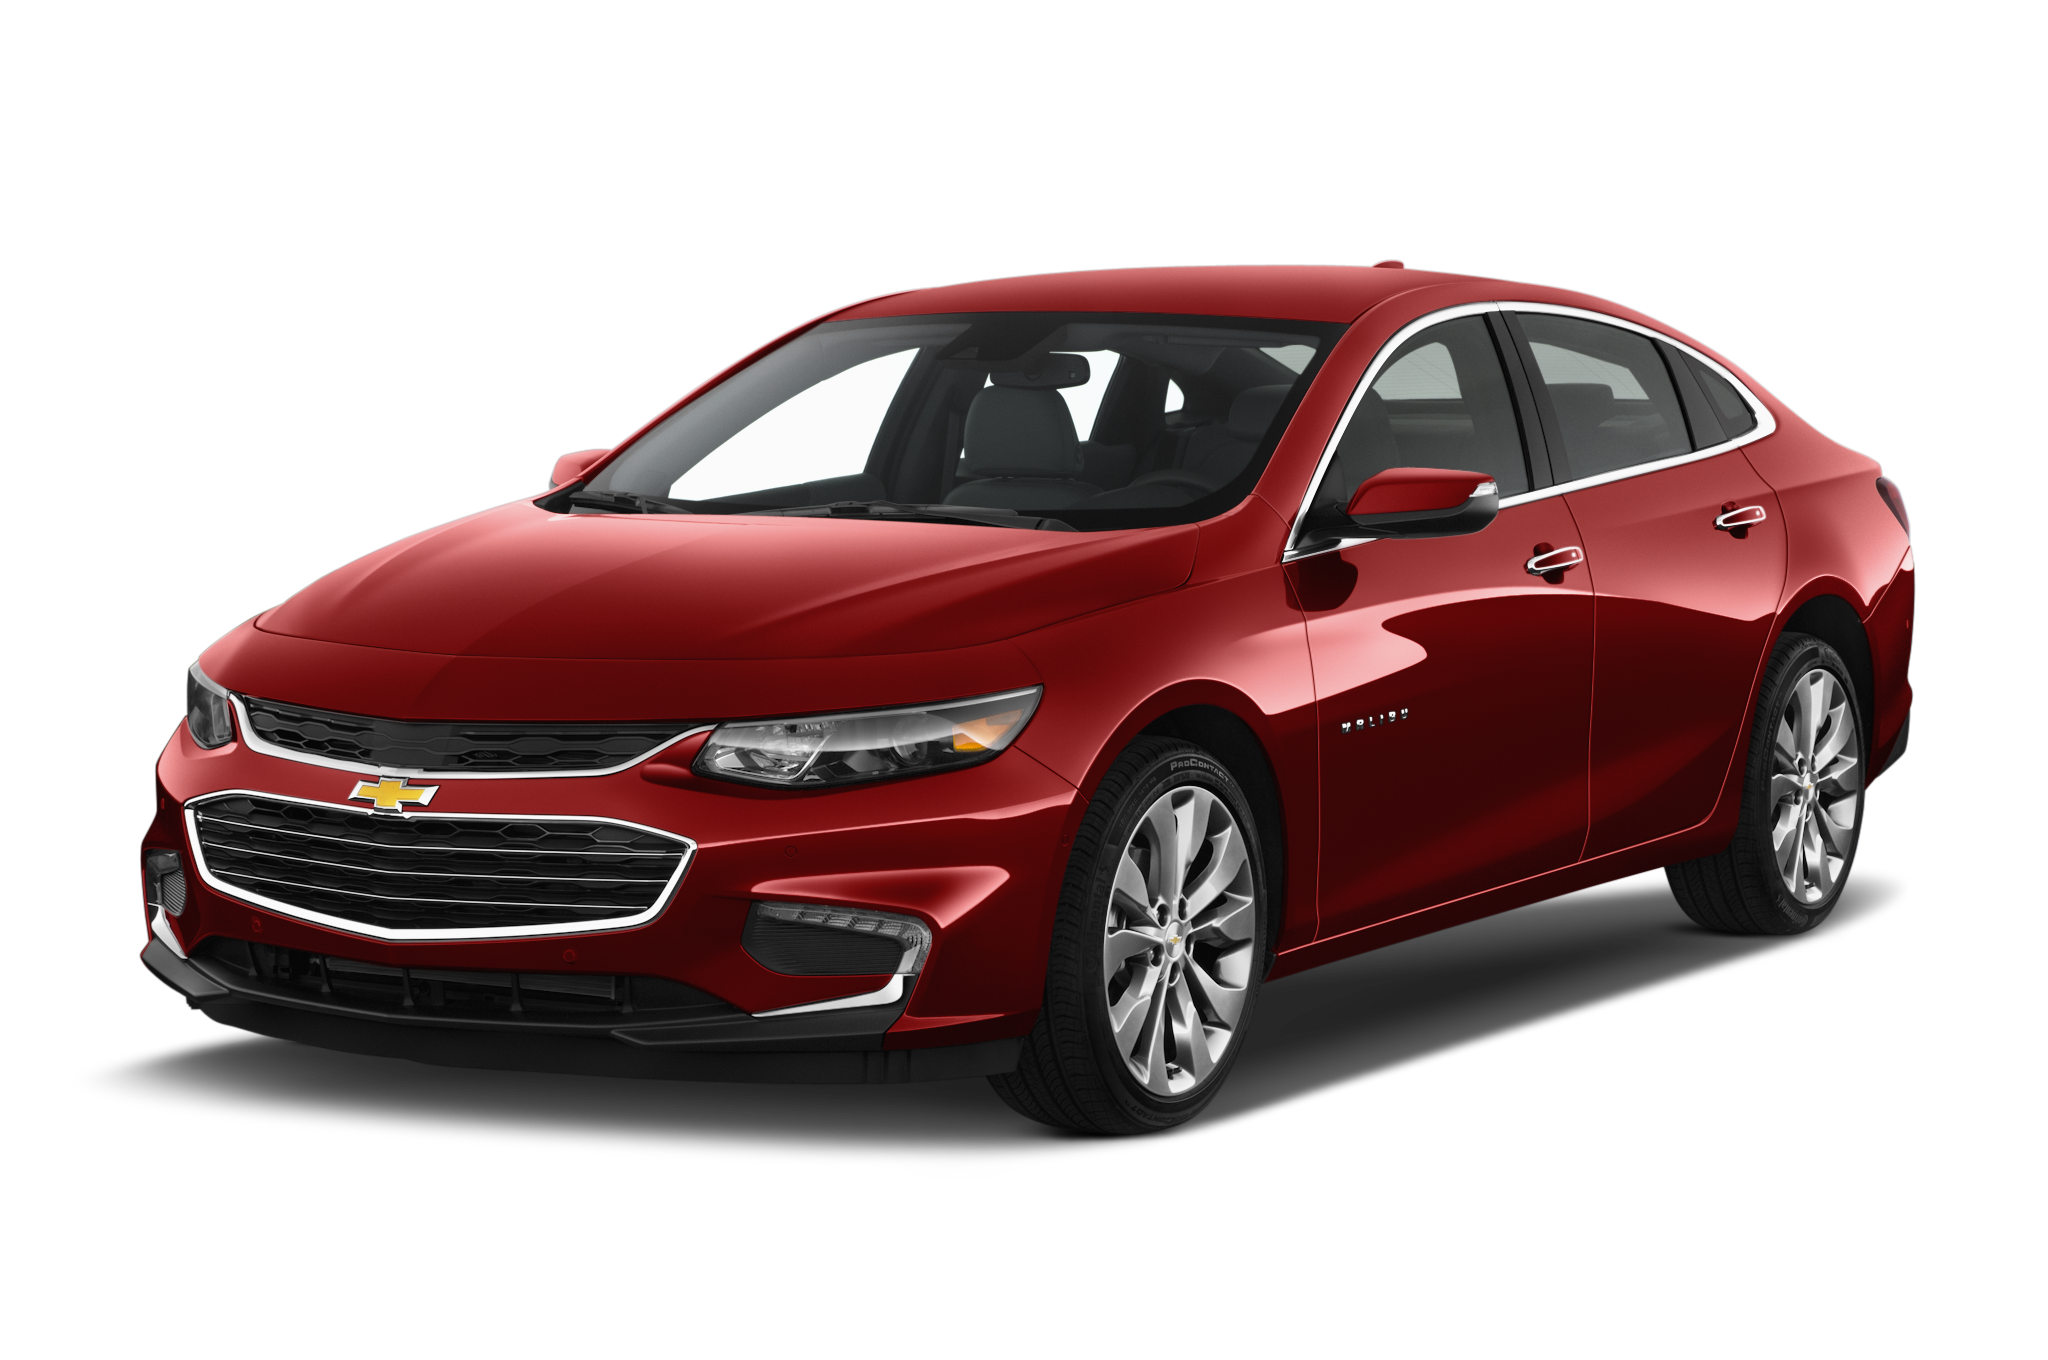 2016 chevrolet malibu hybrid returns 46 mpg automobile. Black Bedroom Furniture Sets. Home Design Ideas